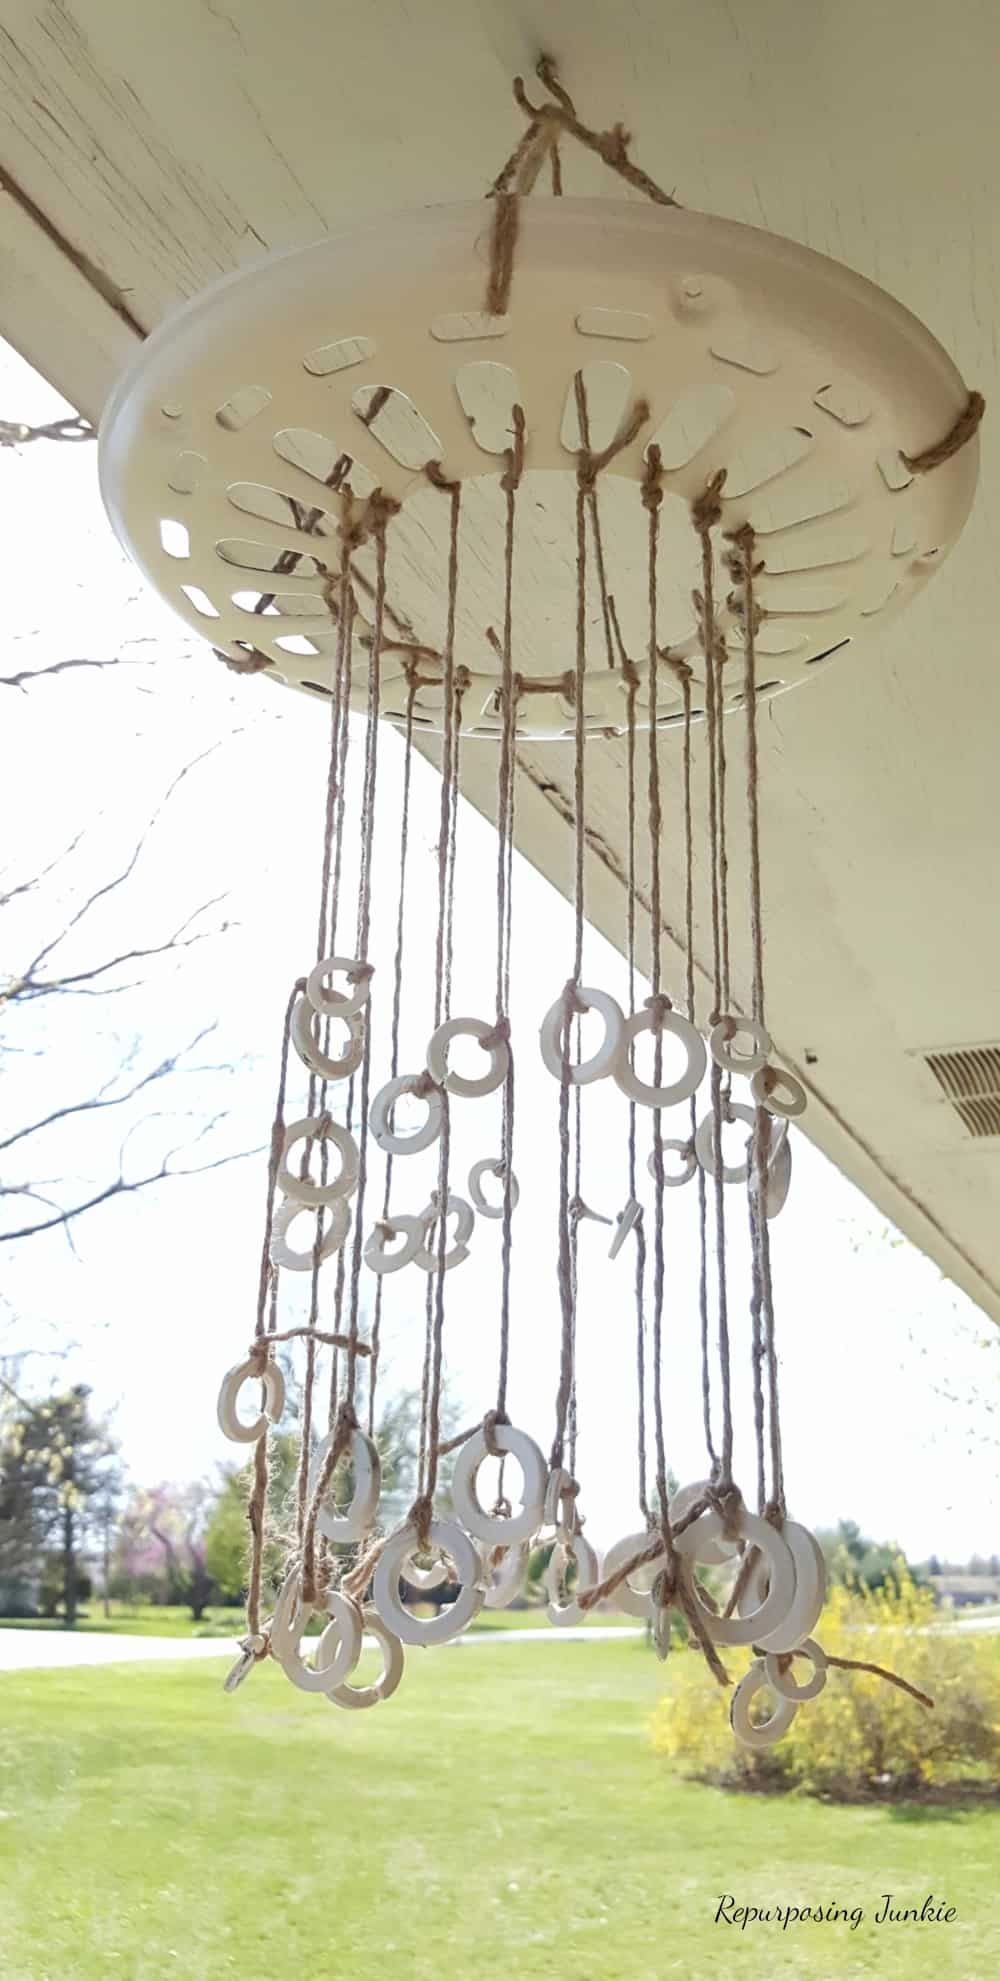 How to Make a Wind Chime using Repurposed Materials